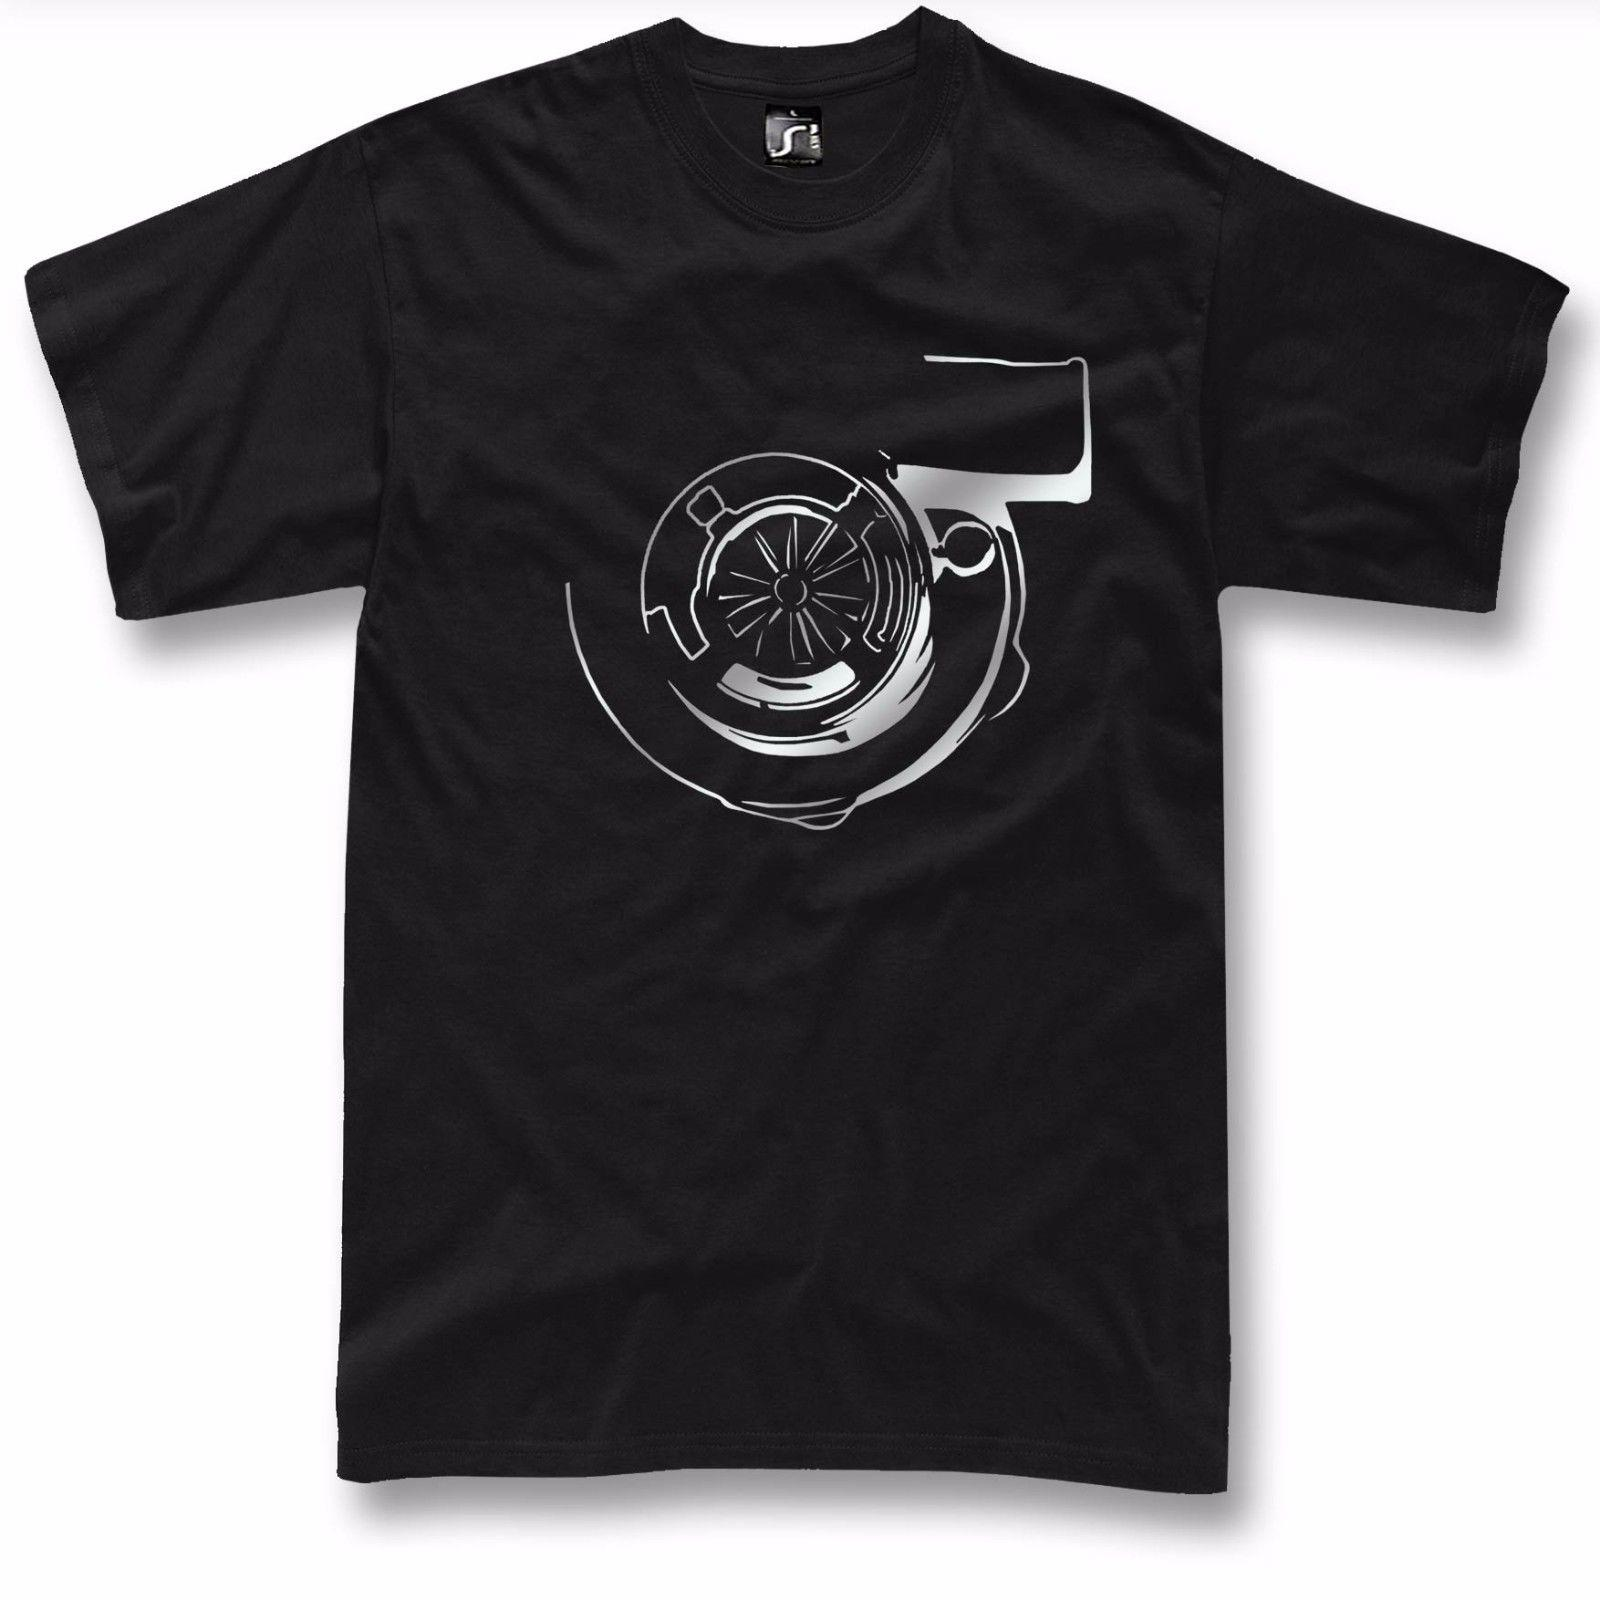 Turbo T Shirt Boost JDM Tuning Drift car NEW Silver Graphic design ( S 5XL ) 2018 New Short Sleeve Family Top Tee